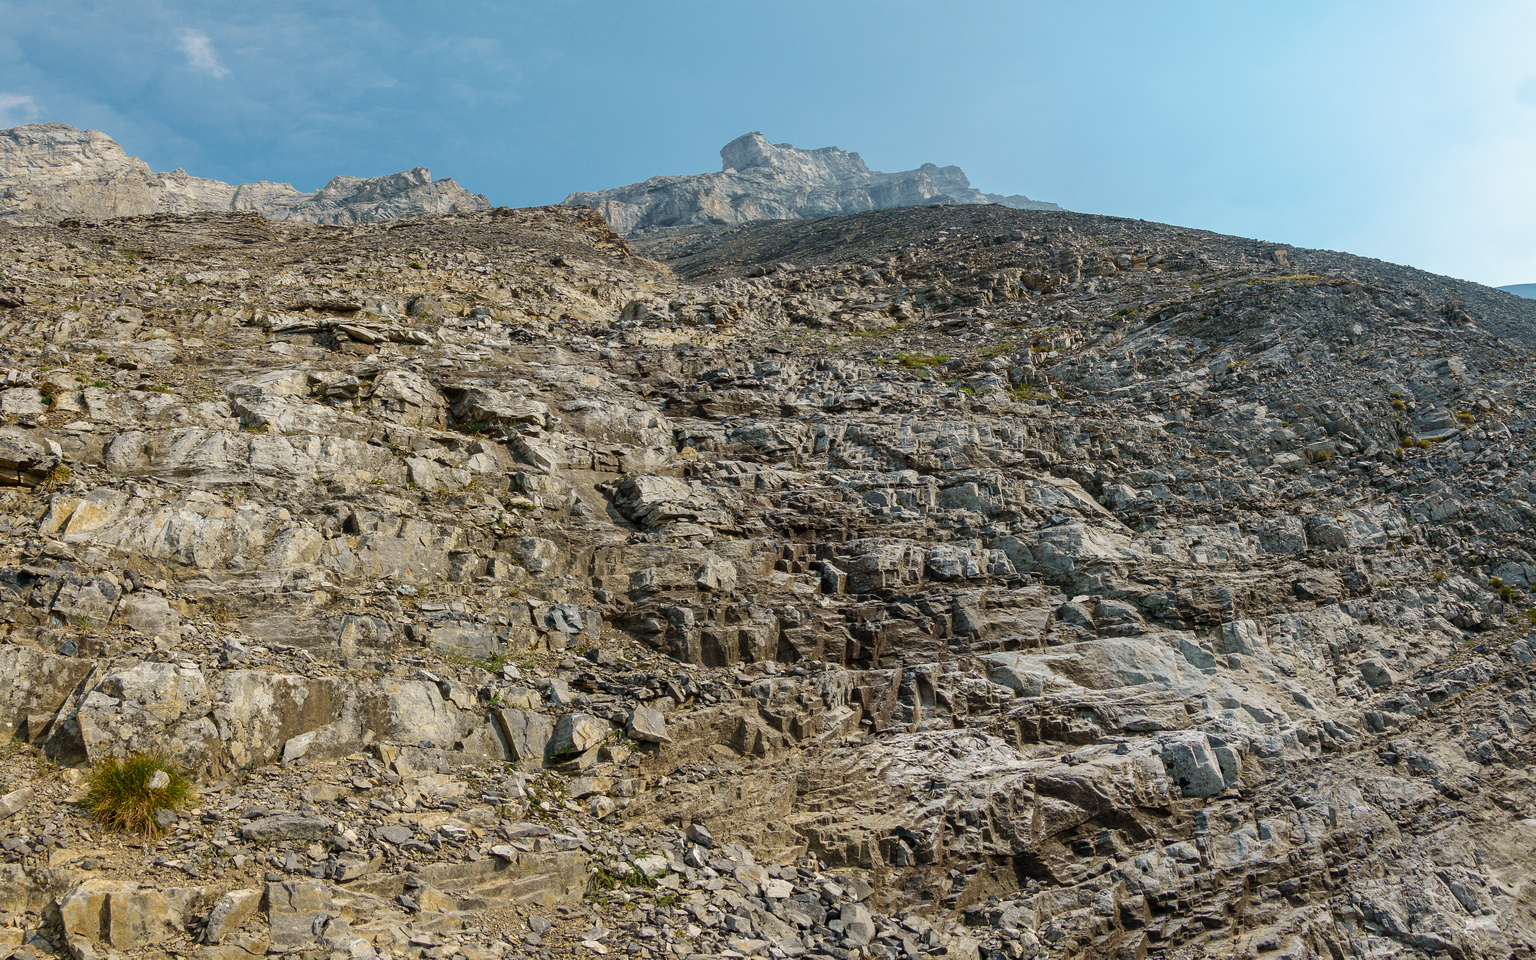 Stepped terrain on the lower south face.